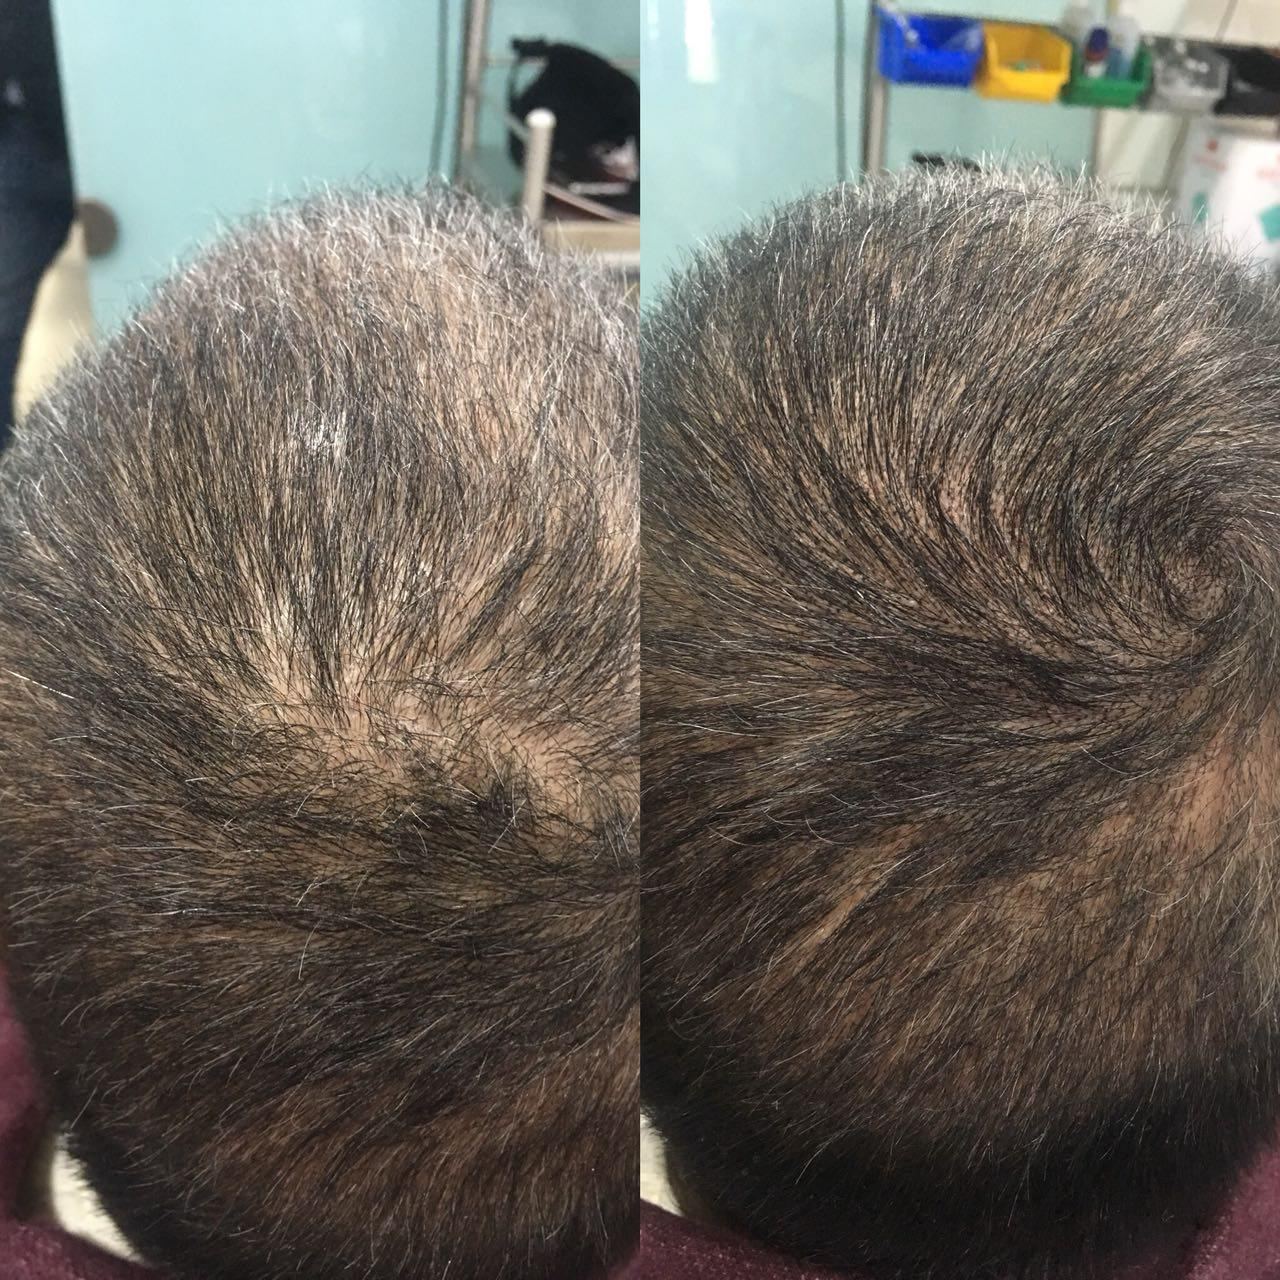 Has Anyone Had Scalp Micropigmentation To Camouflage A Hair